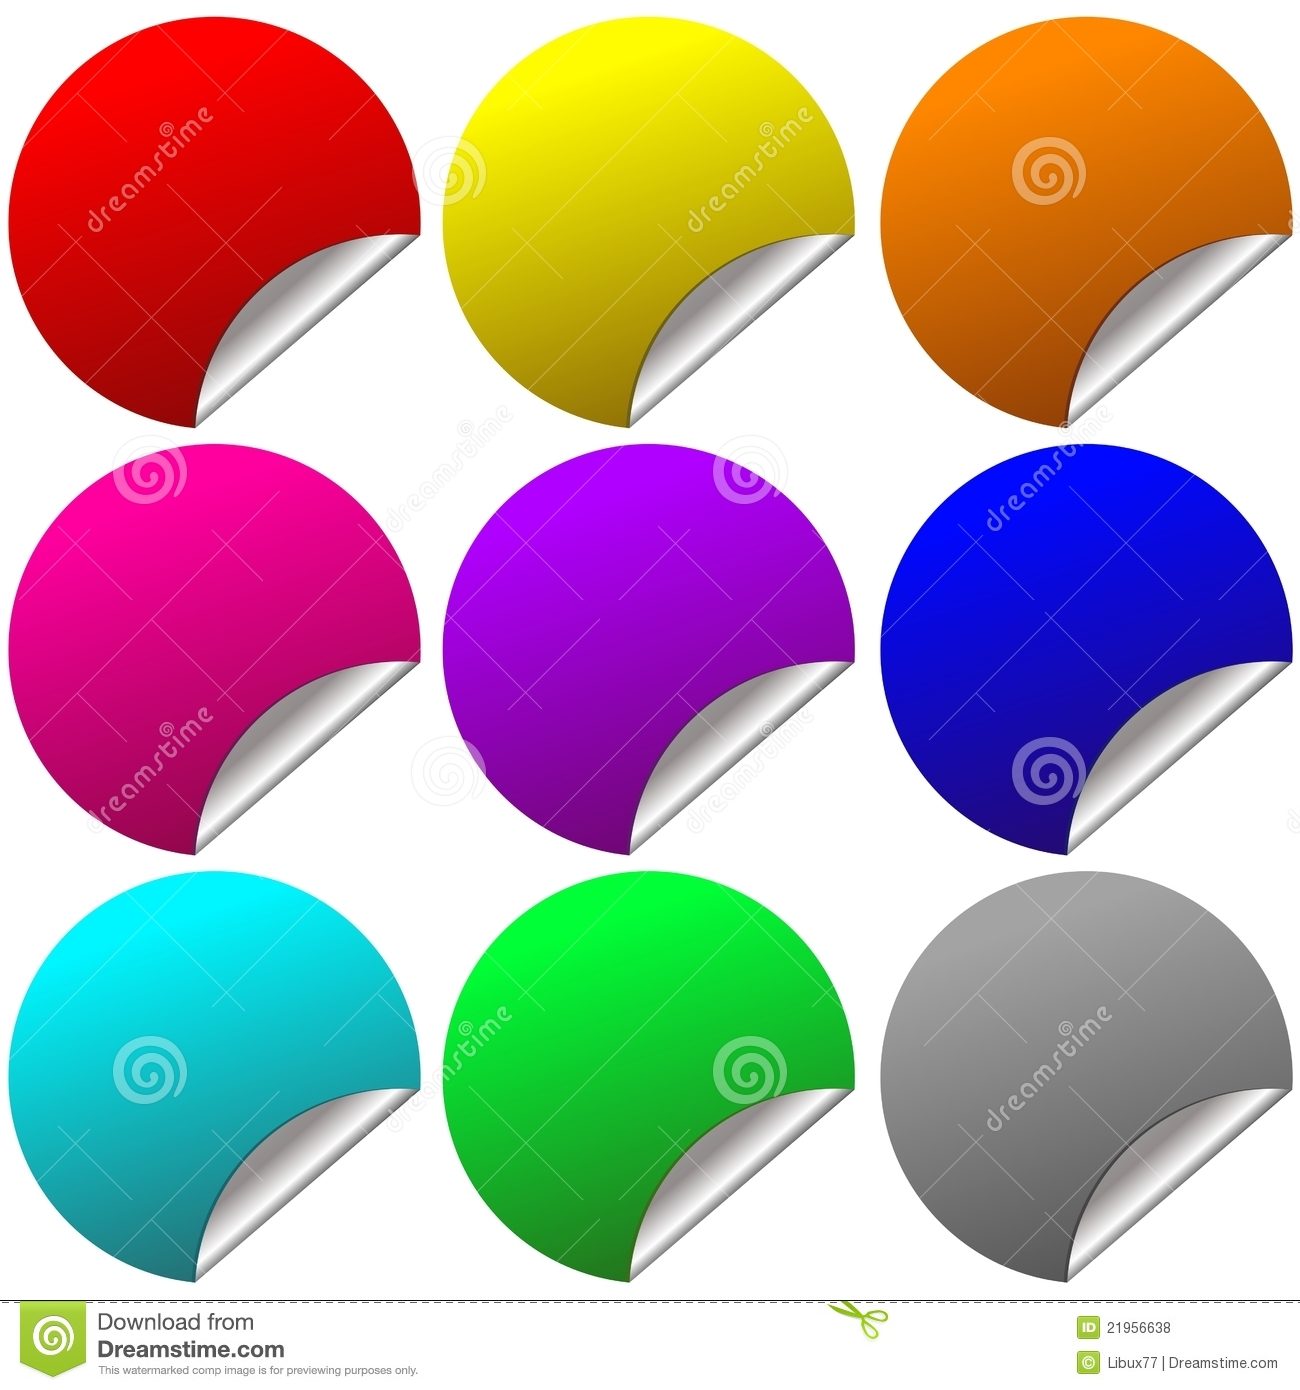 Blank Stickers Royalty Free Stock Photos - Image: 21956638